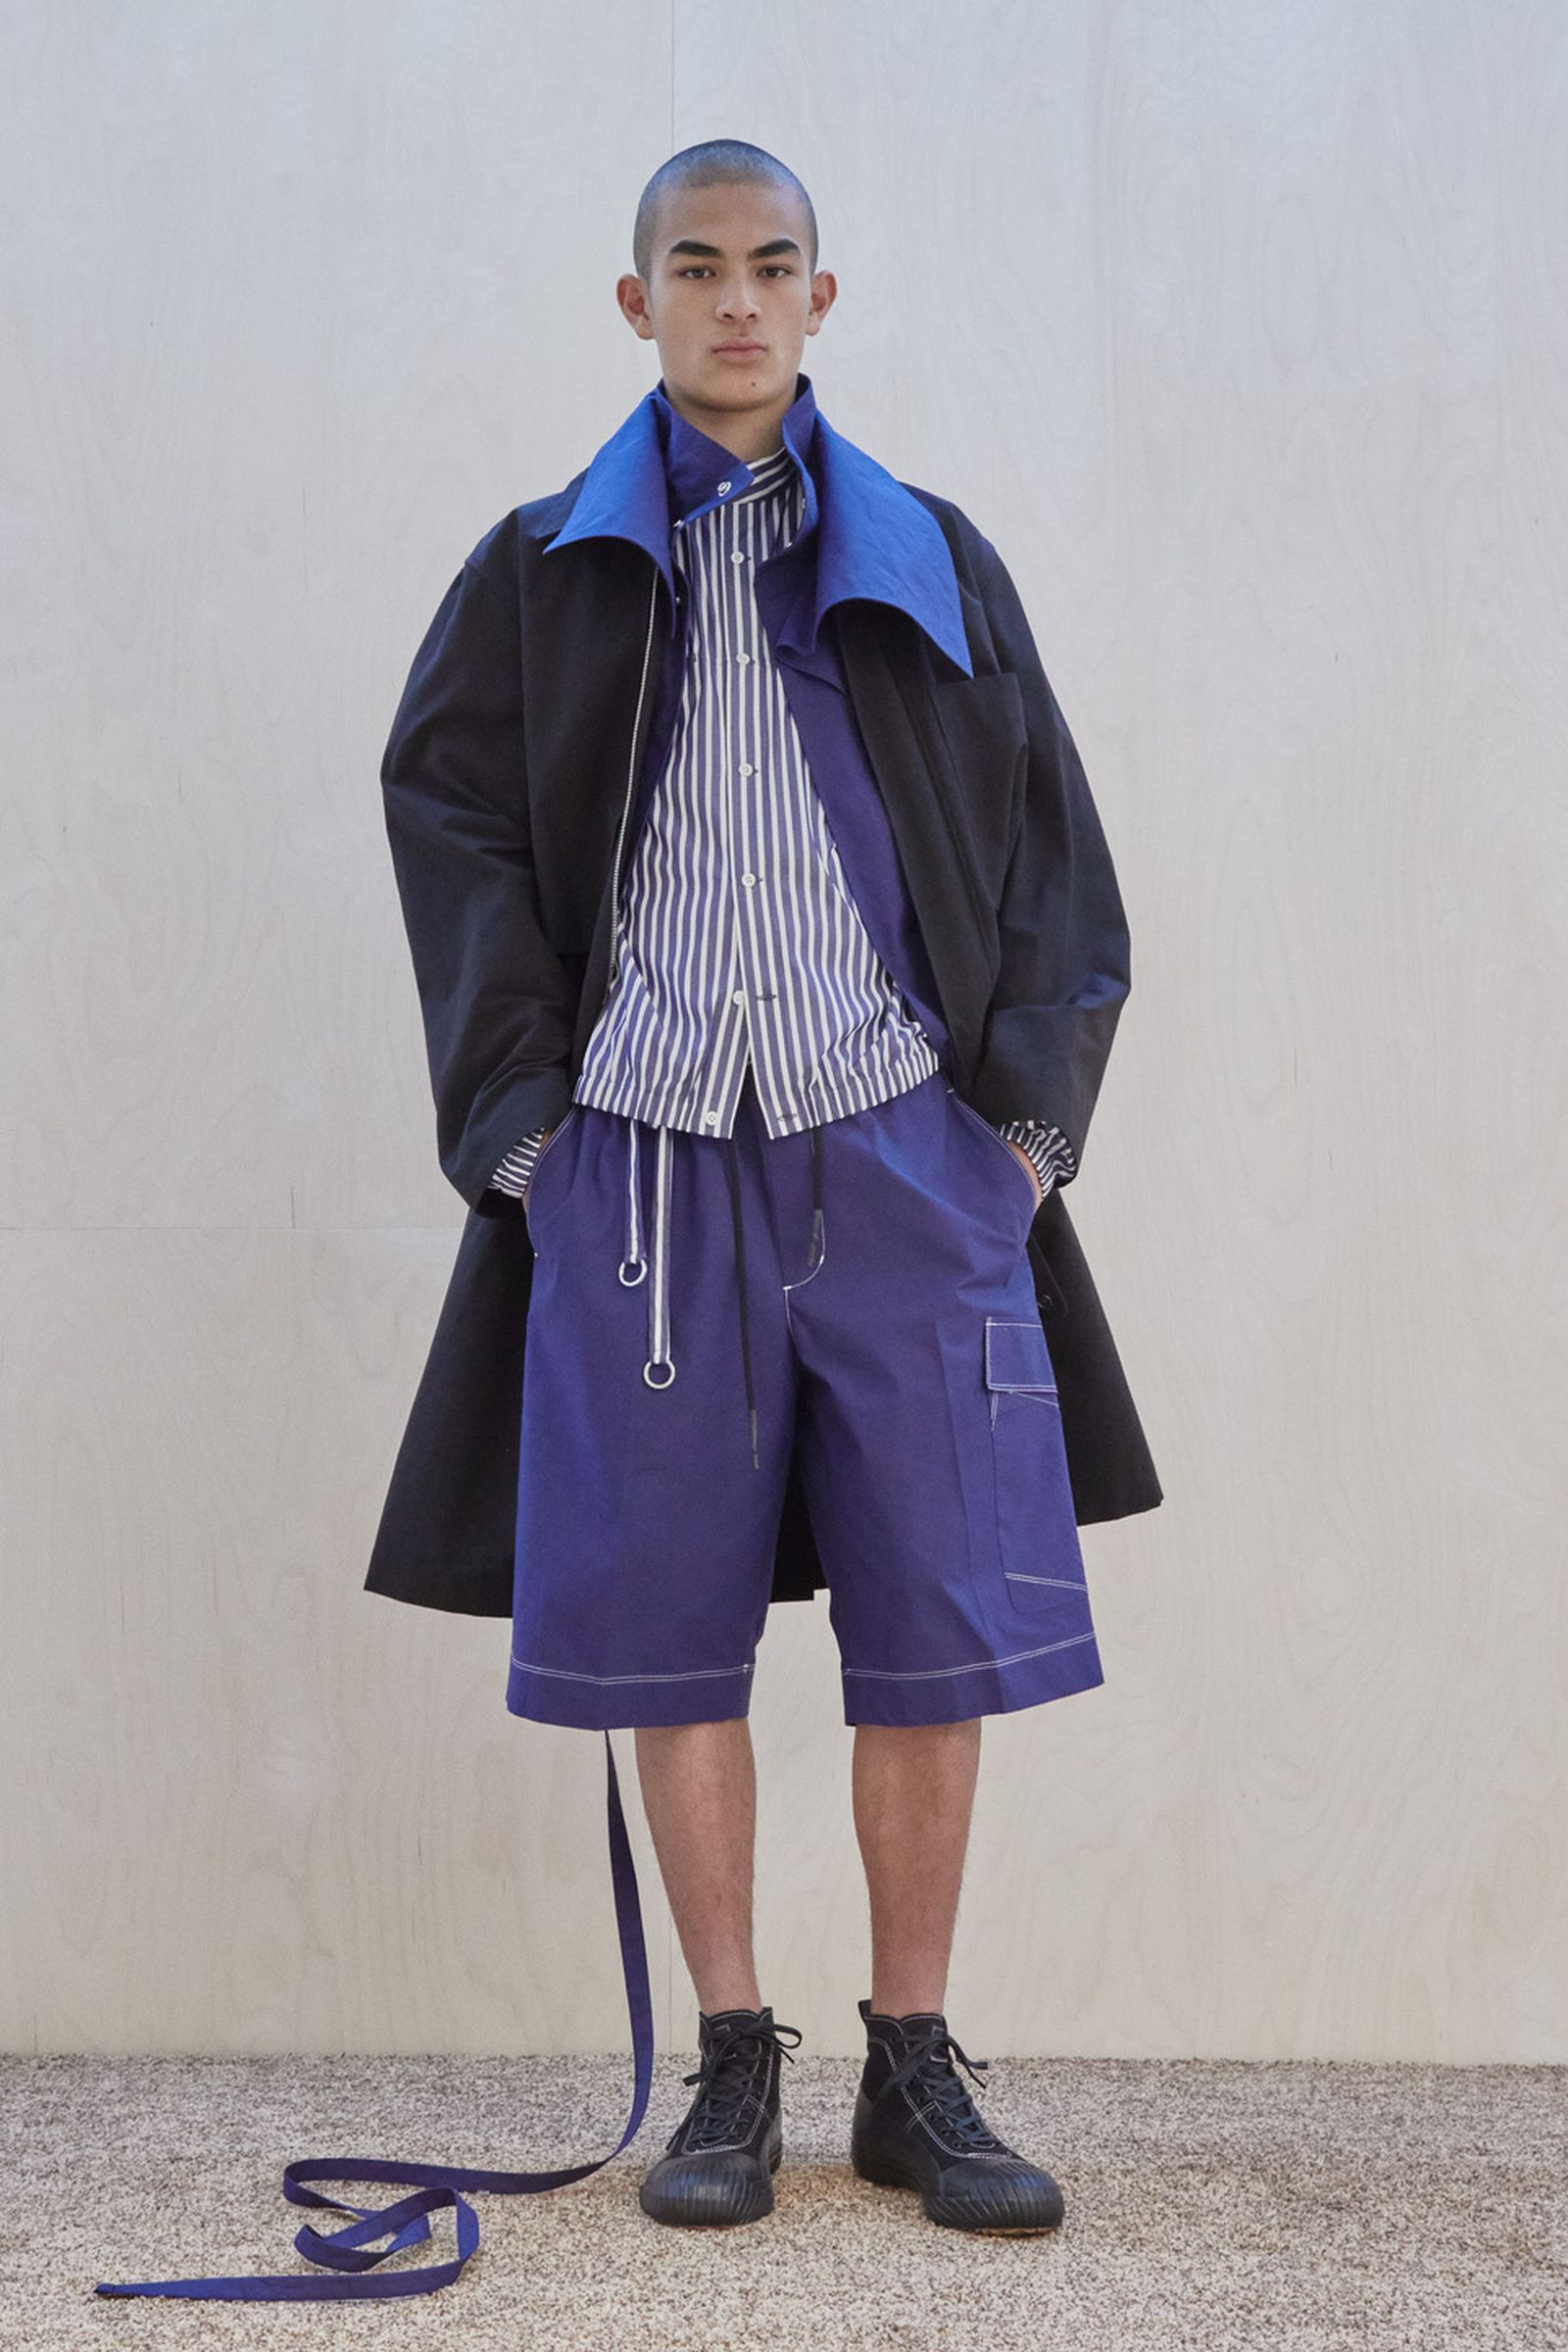 Plim FW19 Mens Collections Lores 09 3.1 phillip lim fall 2019